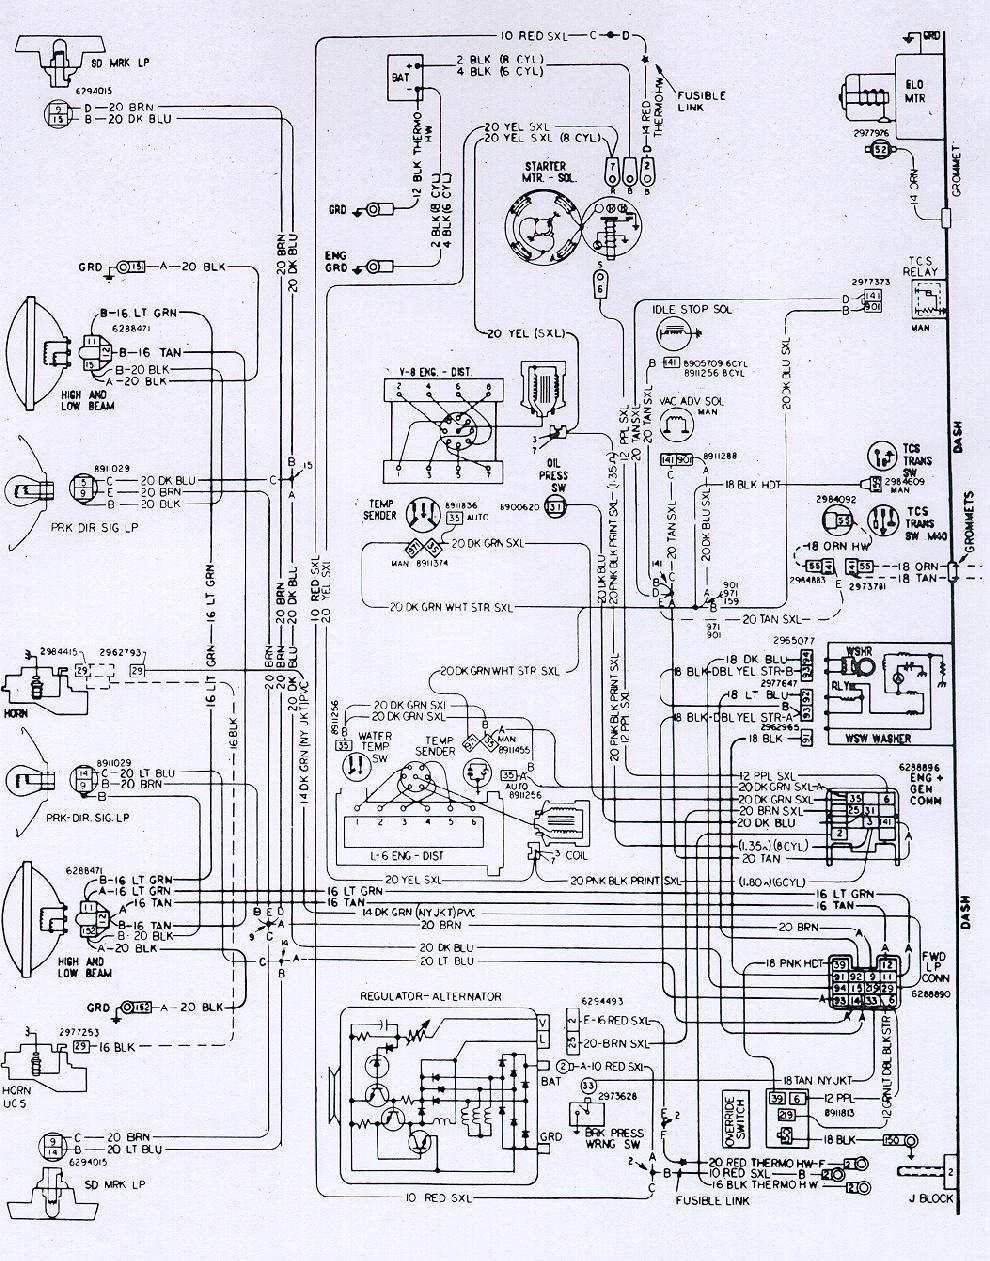 medium resolution of 1977 camaro dash wiring diagram wiring diagram third level rh 2 11 11 jacobwinterstein com 69 camaro firewall wiring 1968 camaro wiring diagram